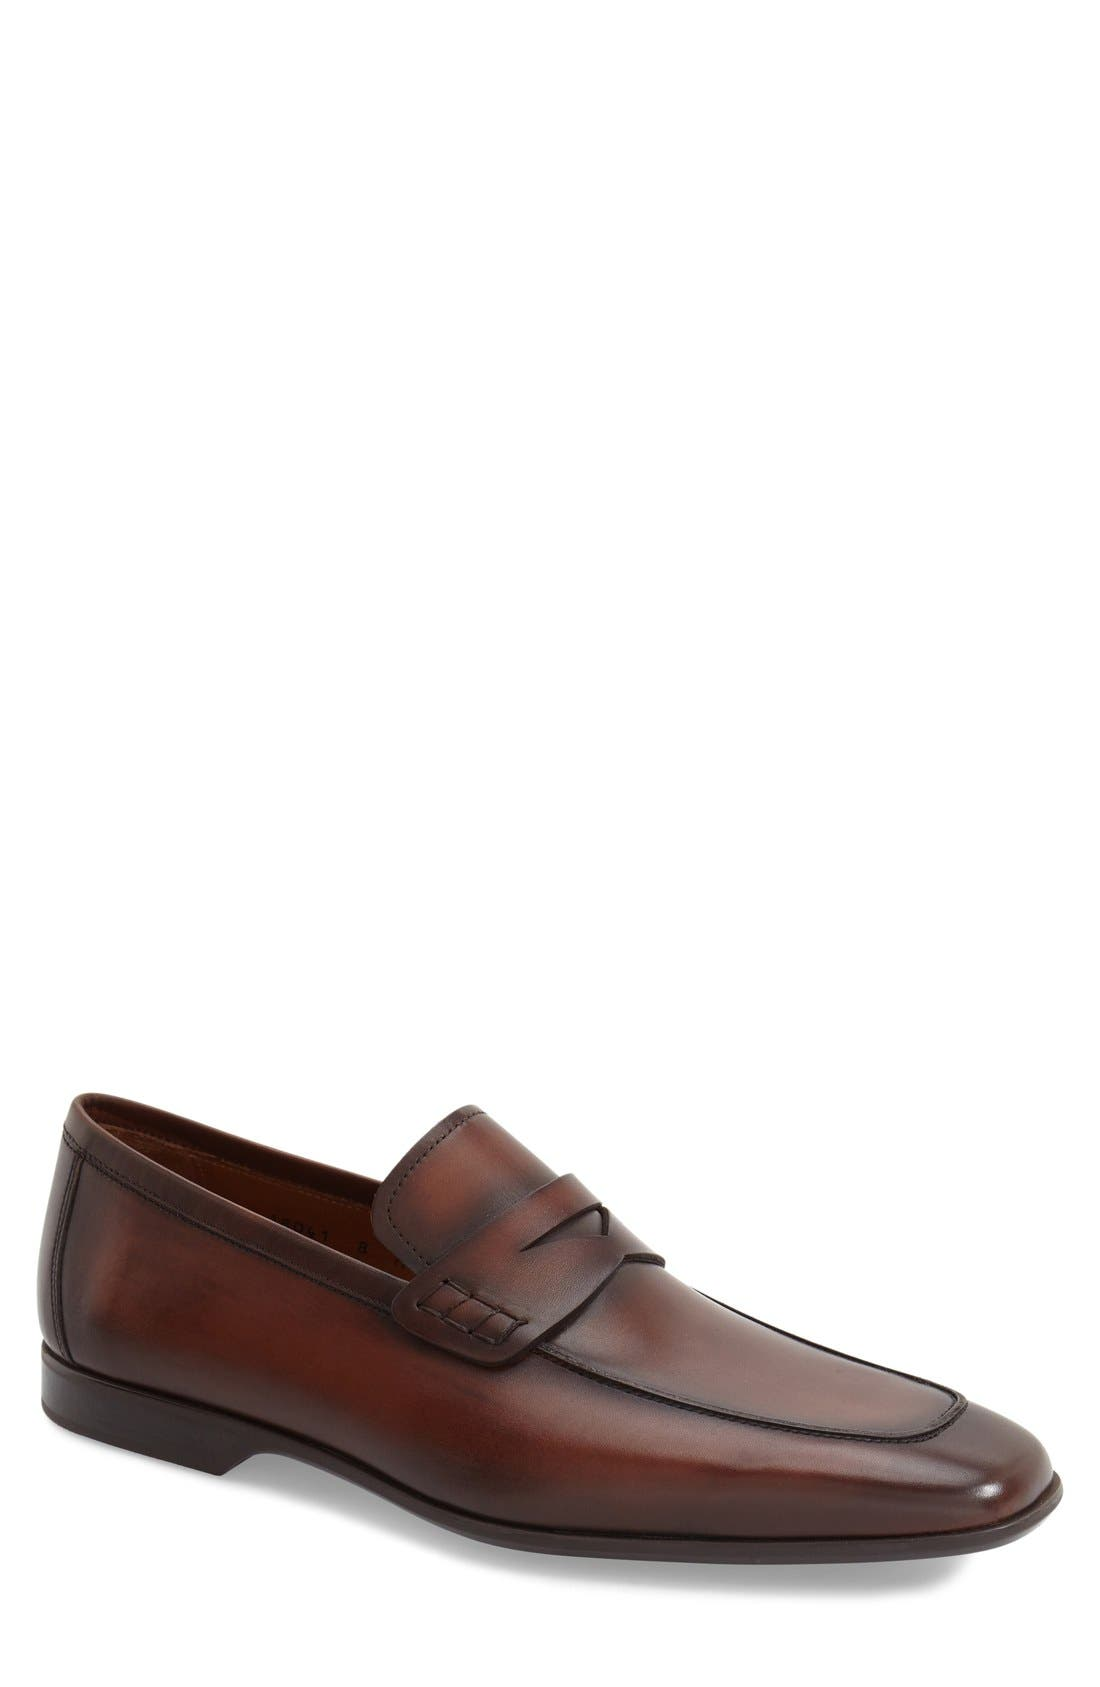 'Ramiro II' Penny Loafer,                         Main,                         color, MID BROWN LEATHER